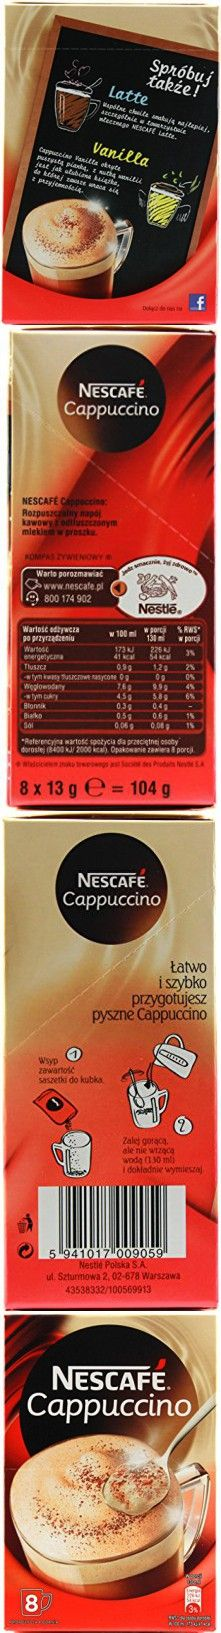 3 Packs of Nescafe Instant Cappuccino in Individual Pockets (8 Pockets Per Pack)